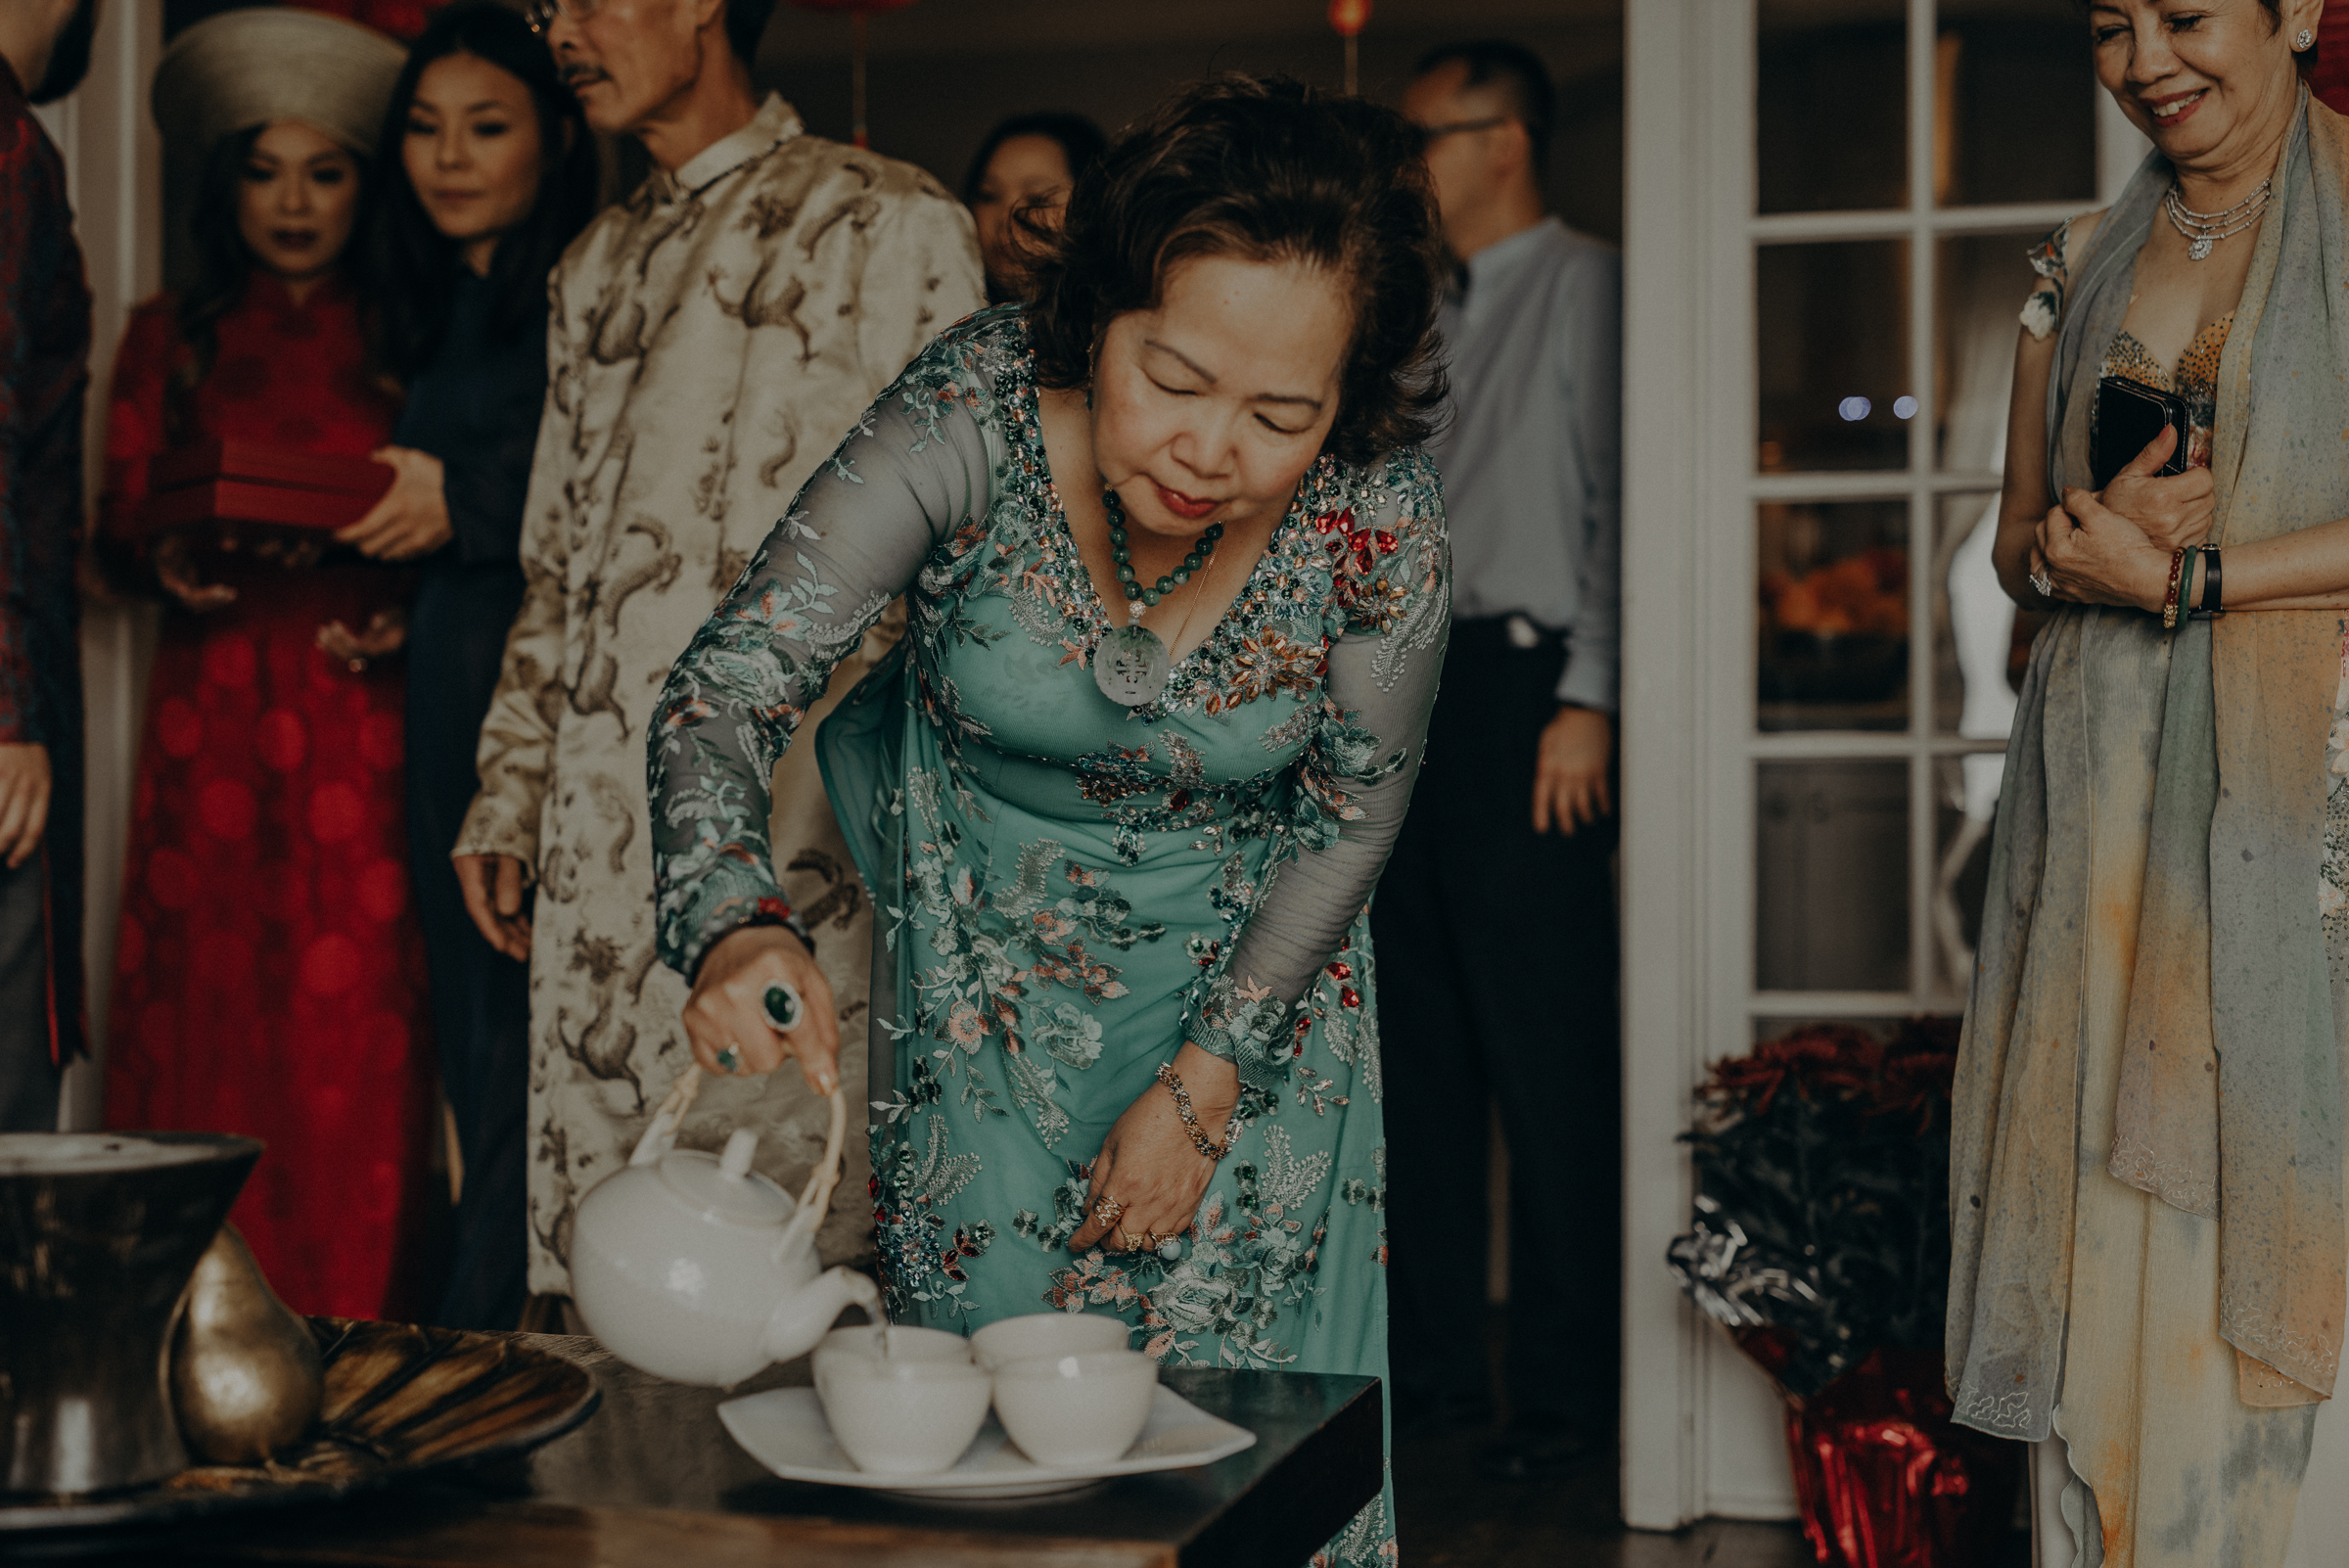 Los Angeles Wedding Photographer - IsaiahAndTaylor.com - The Ebell of Long Beach Wedding - Traditional Vietnamese tea ceremony-058.jpg